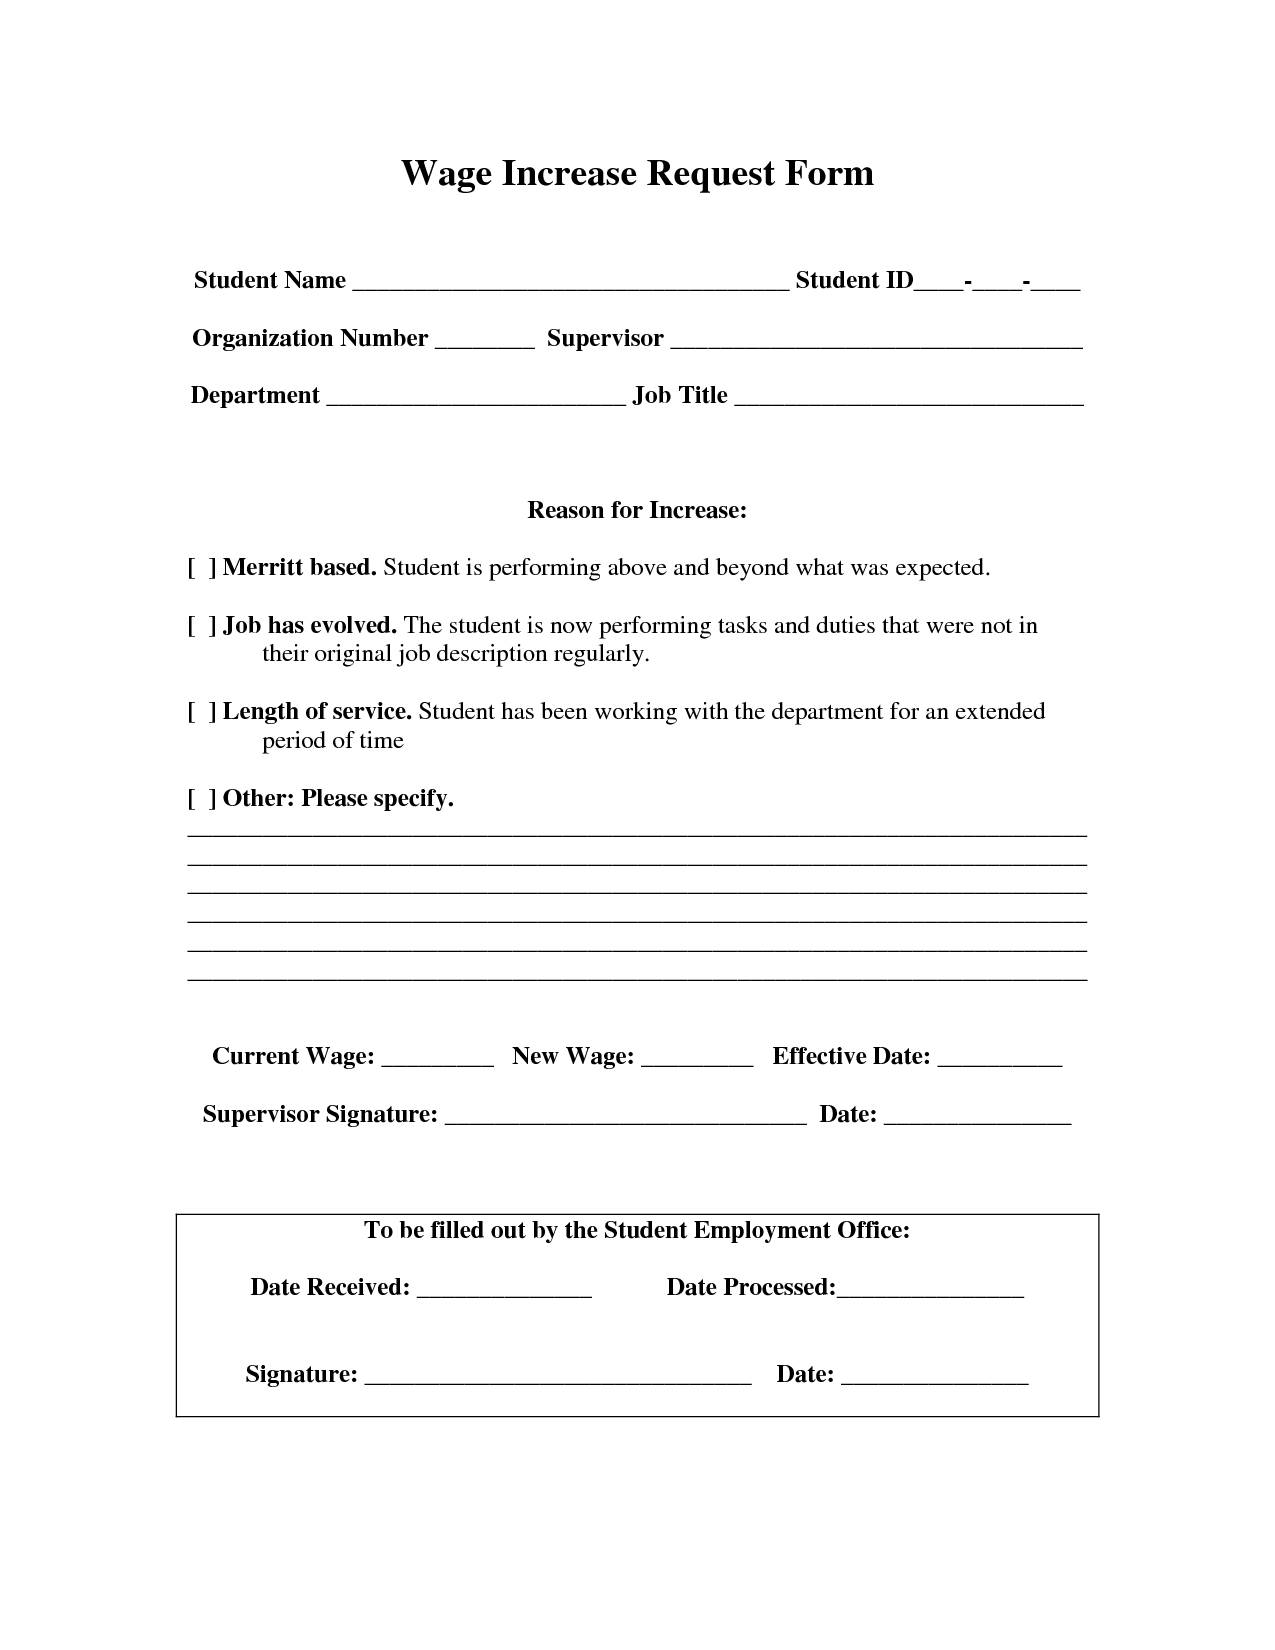 Salary Increase Form Template